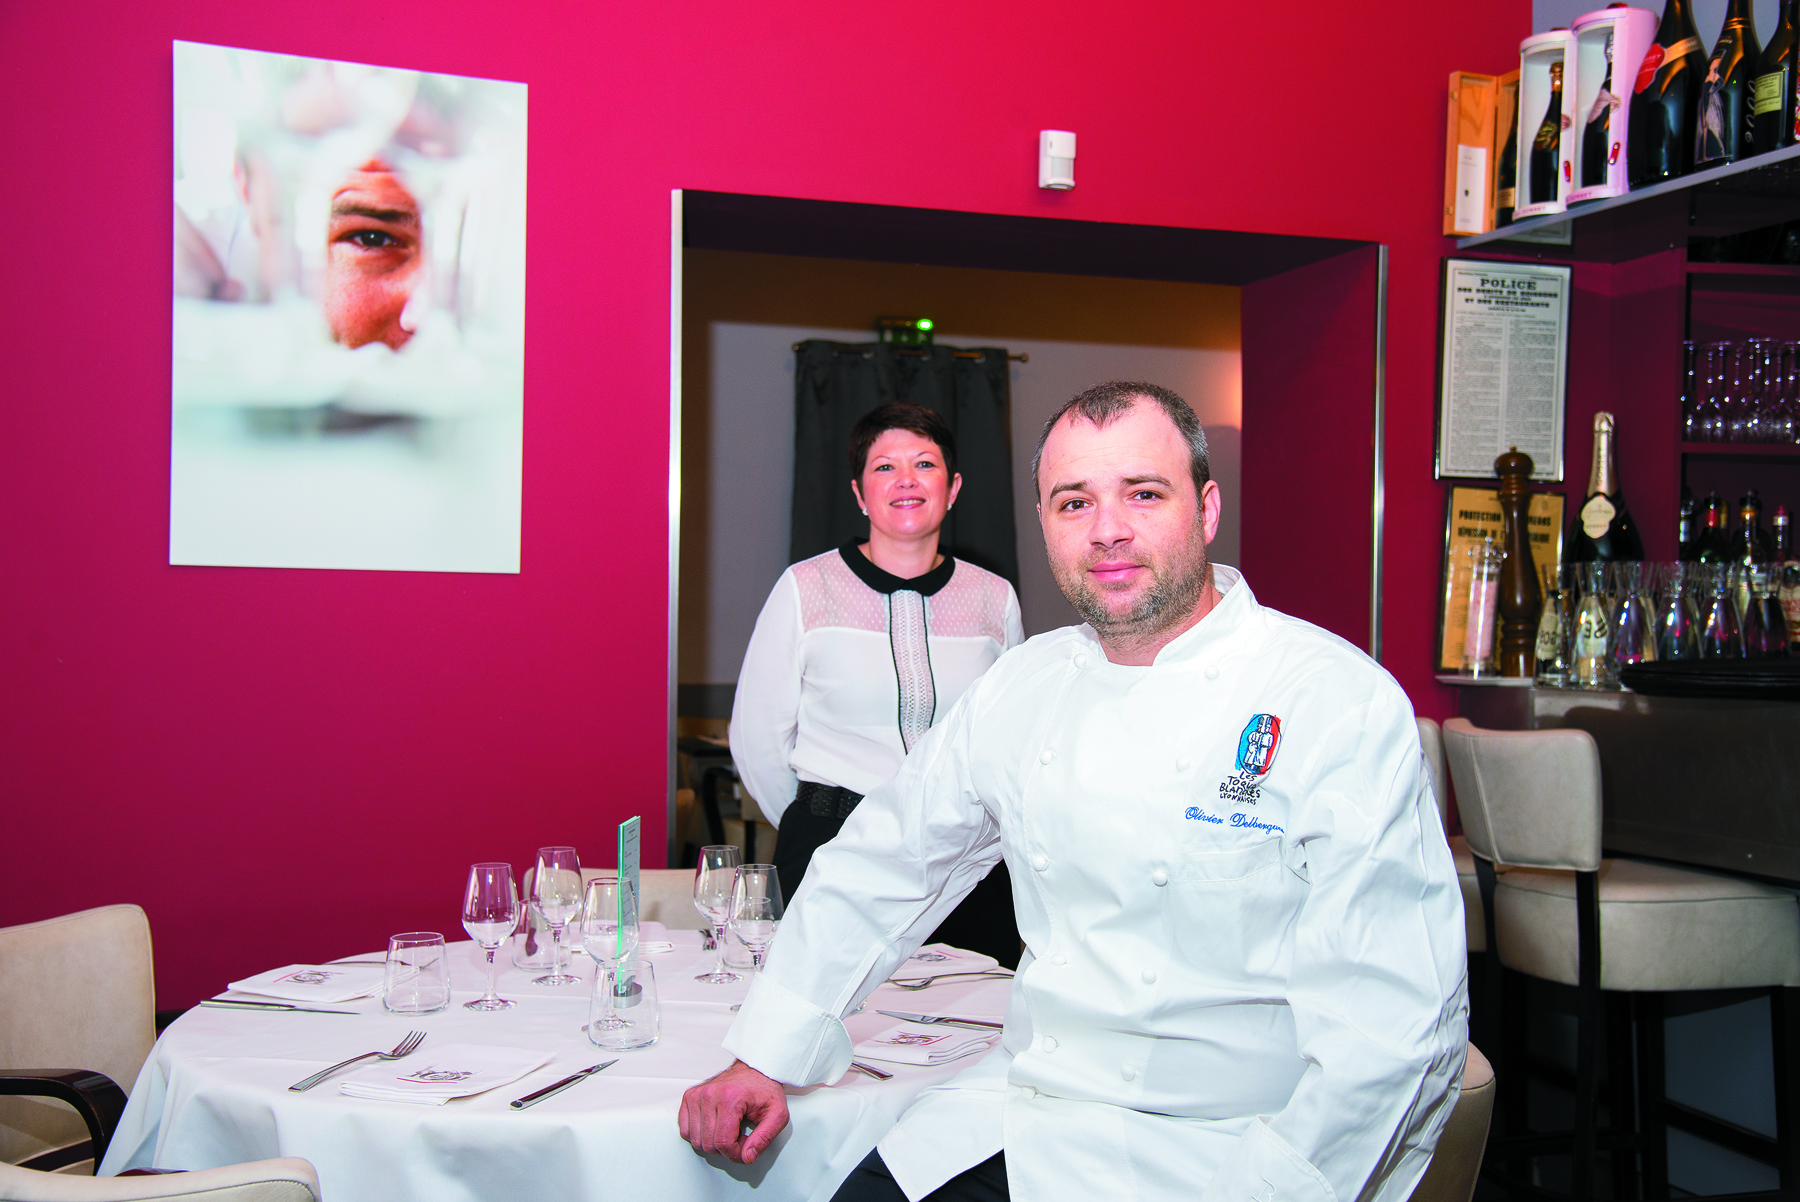 Restaurant La Table 101 - Olivier Delbergues